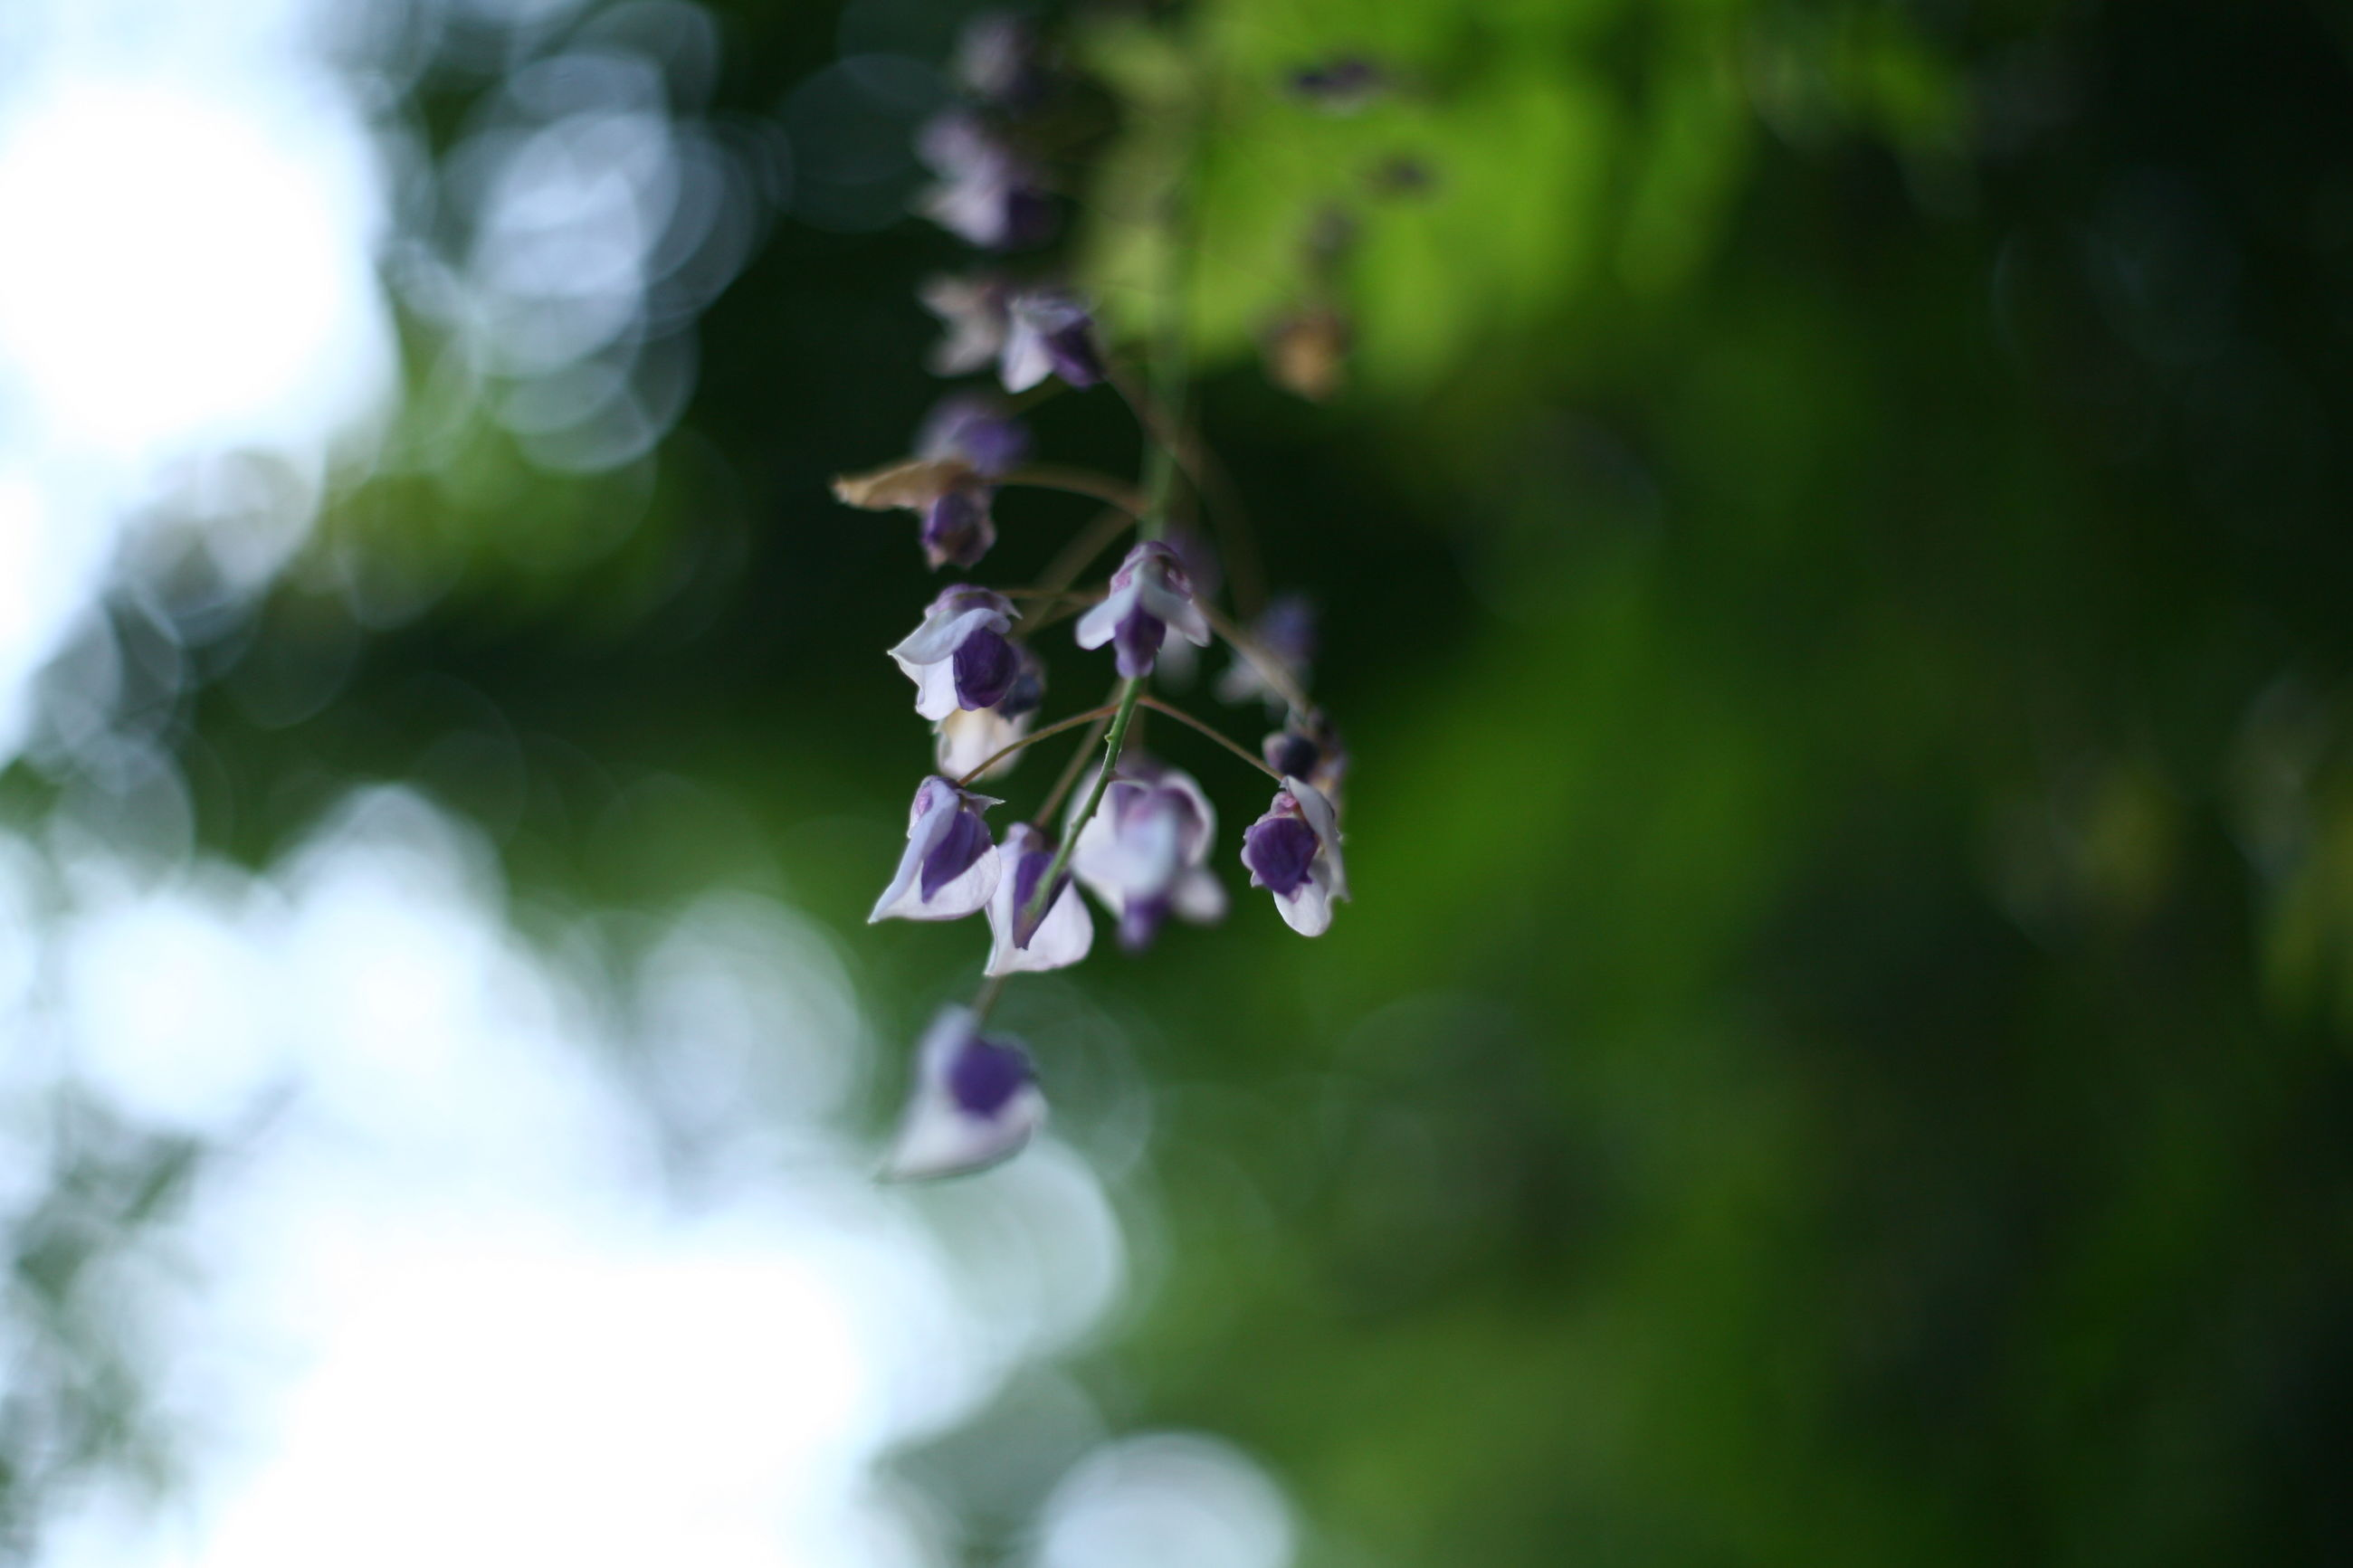 nature, growth, flower, beauty in nature, purple, fragility, outdoors, no people, focus on foreground, freshness, day, plant, close-up, blooming